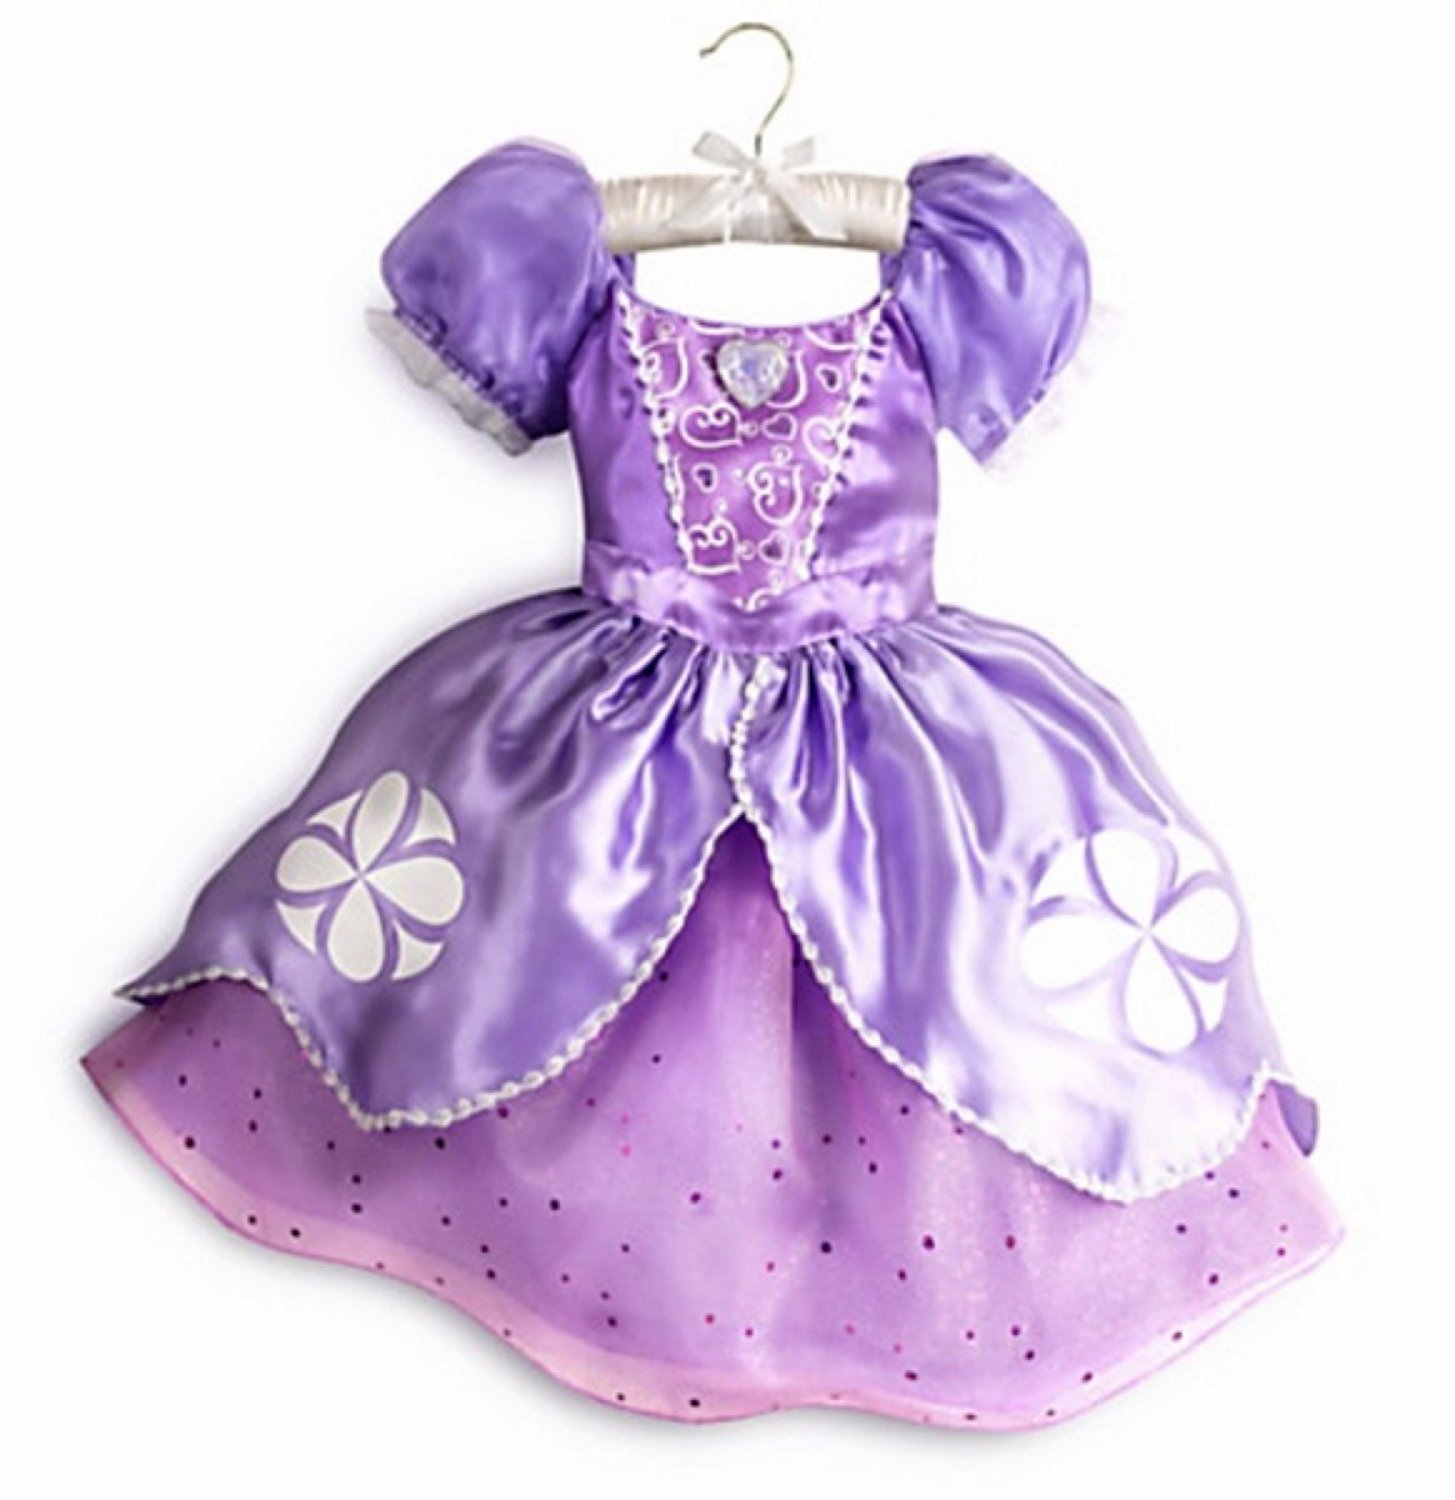 Buy Disney Princess Sofia The First Costume Dress For Girls Size 5 6 In Cheap Price On Alibaba Com